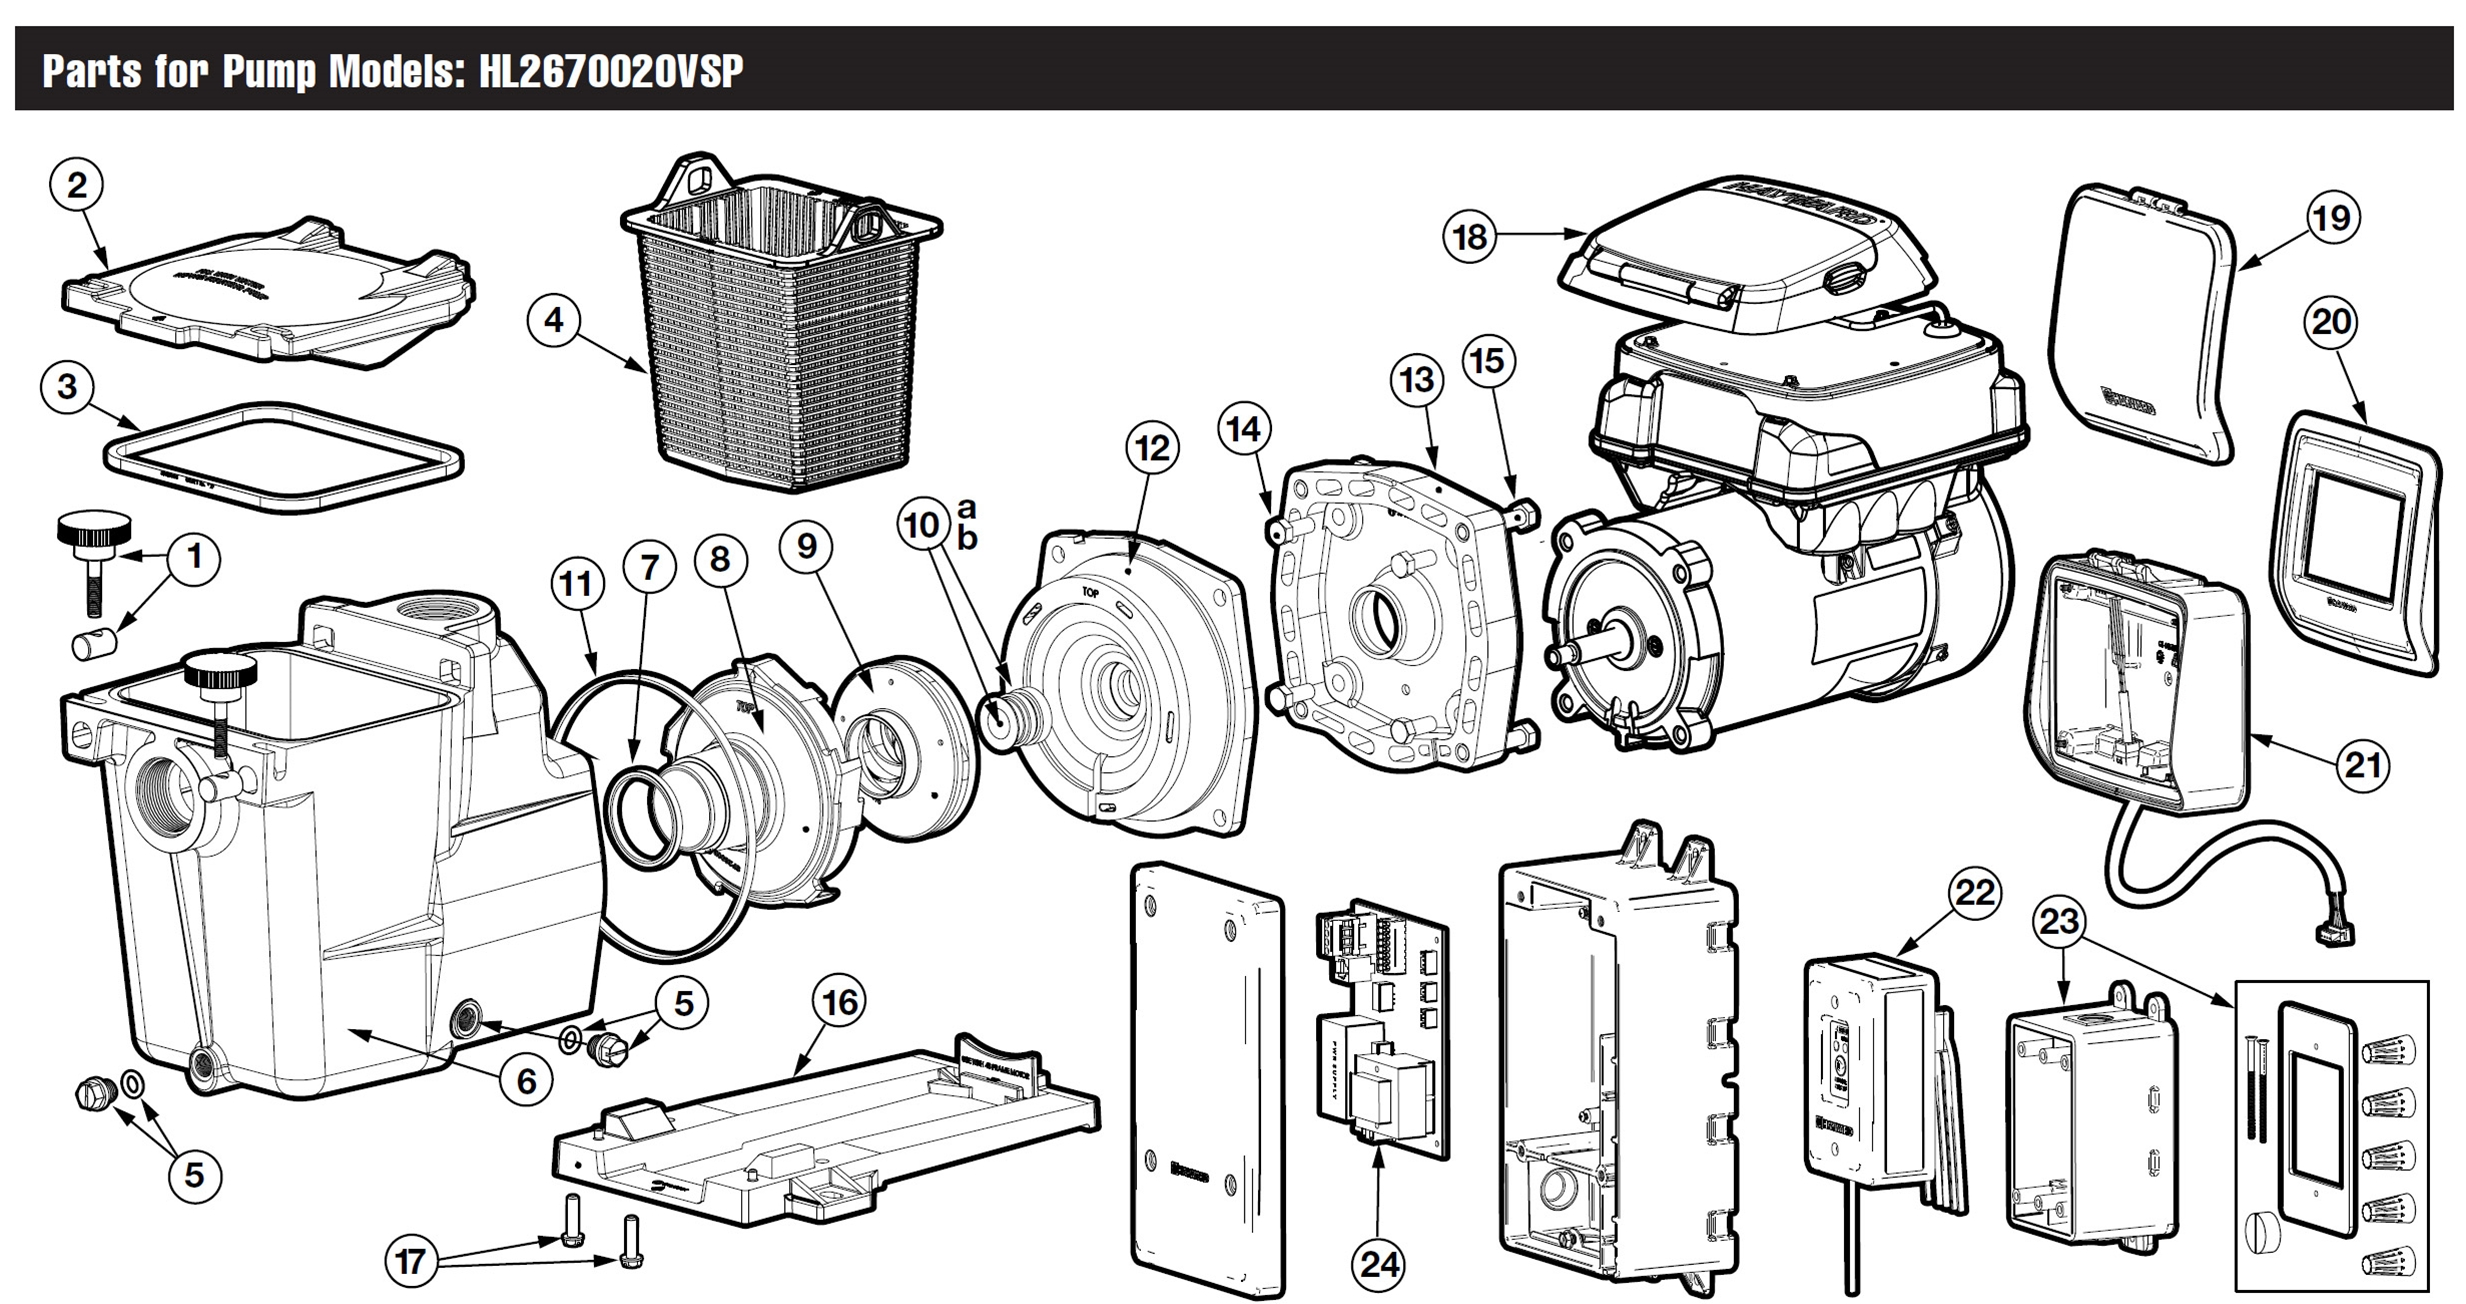 hayward super pump hand knob kit 6 prong trailer wiring diagram vs 700 omni parts